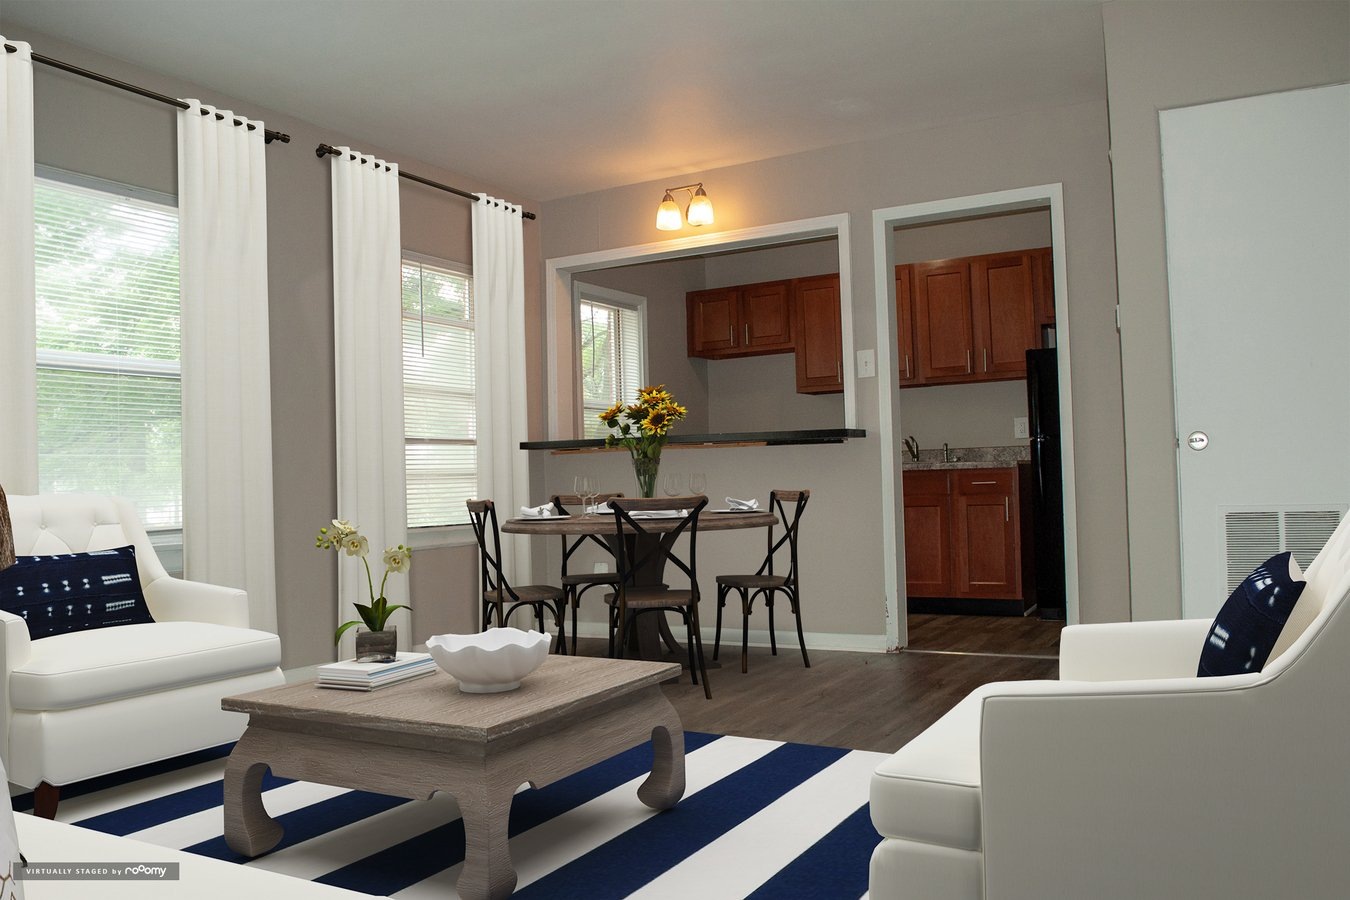 1 Bedroom 1 Bathroom Apartment for rent at Arlington Green (Indy Town) in Indianapolis, IN